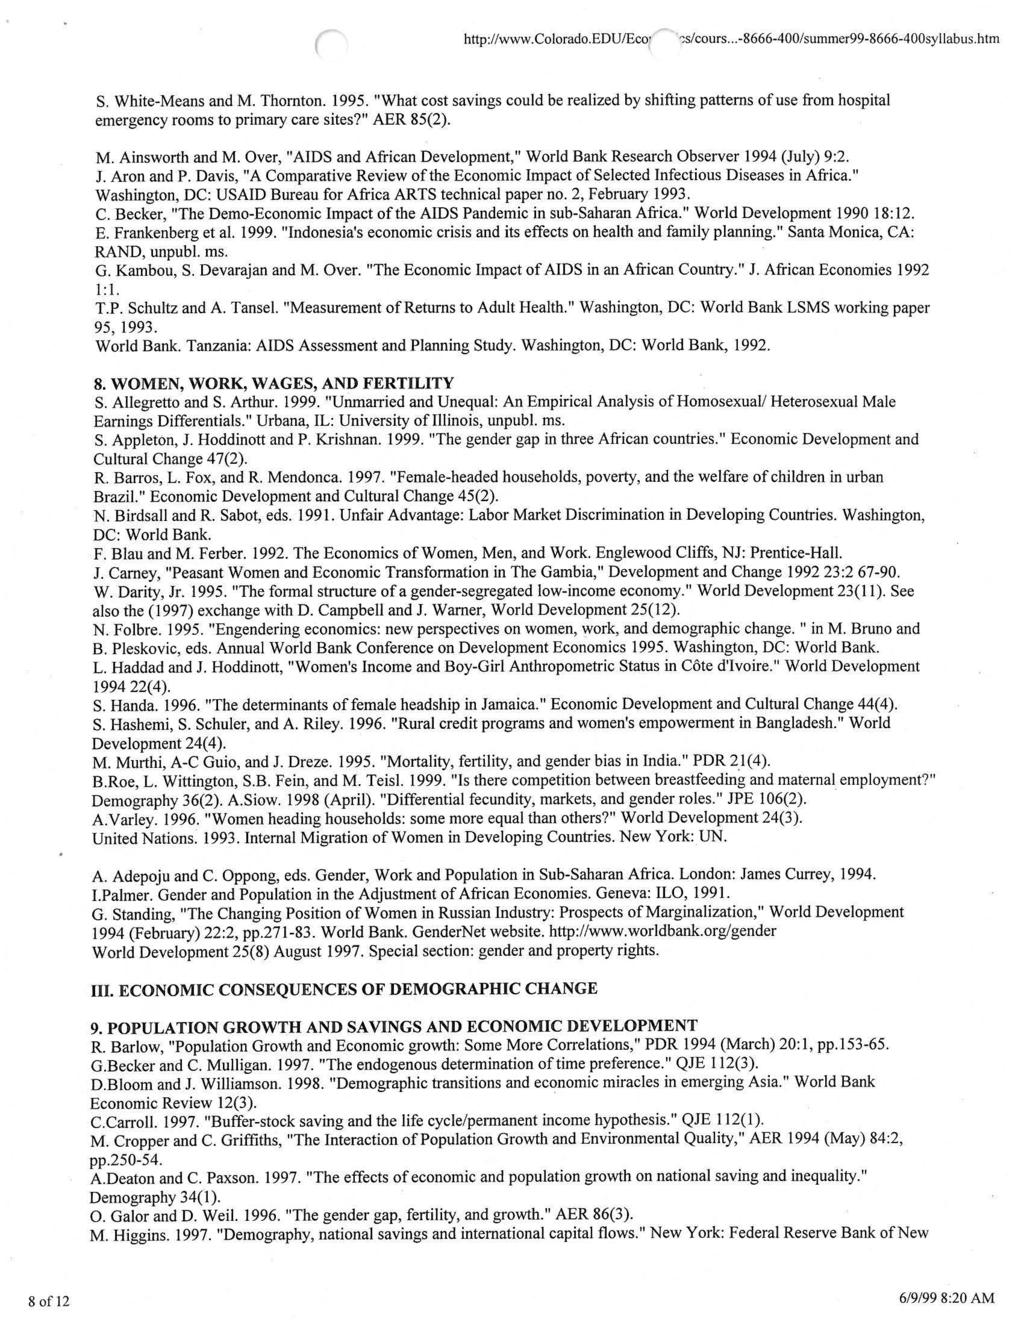 http://www.colorado.edu/eco1 ~s/cours... -8666-400/summer99-8666-400syllabus.htm S. White-Means and M. Thornton. 1995.